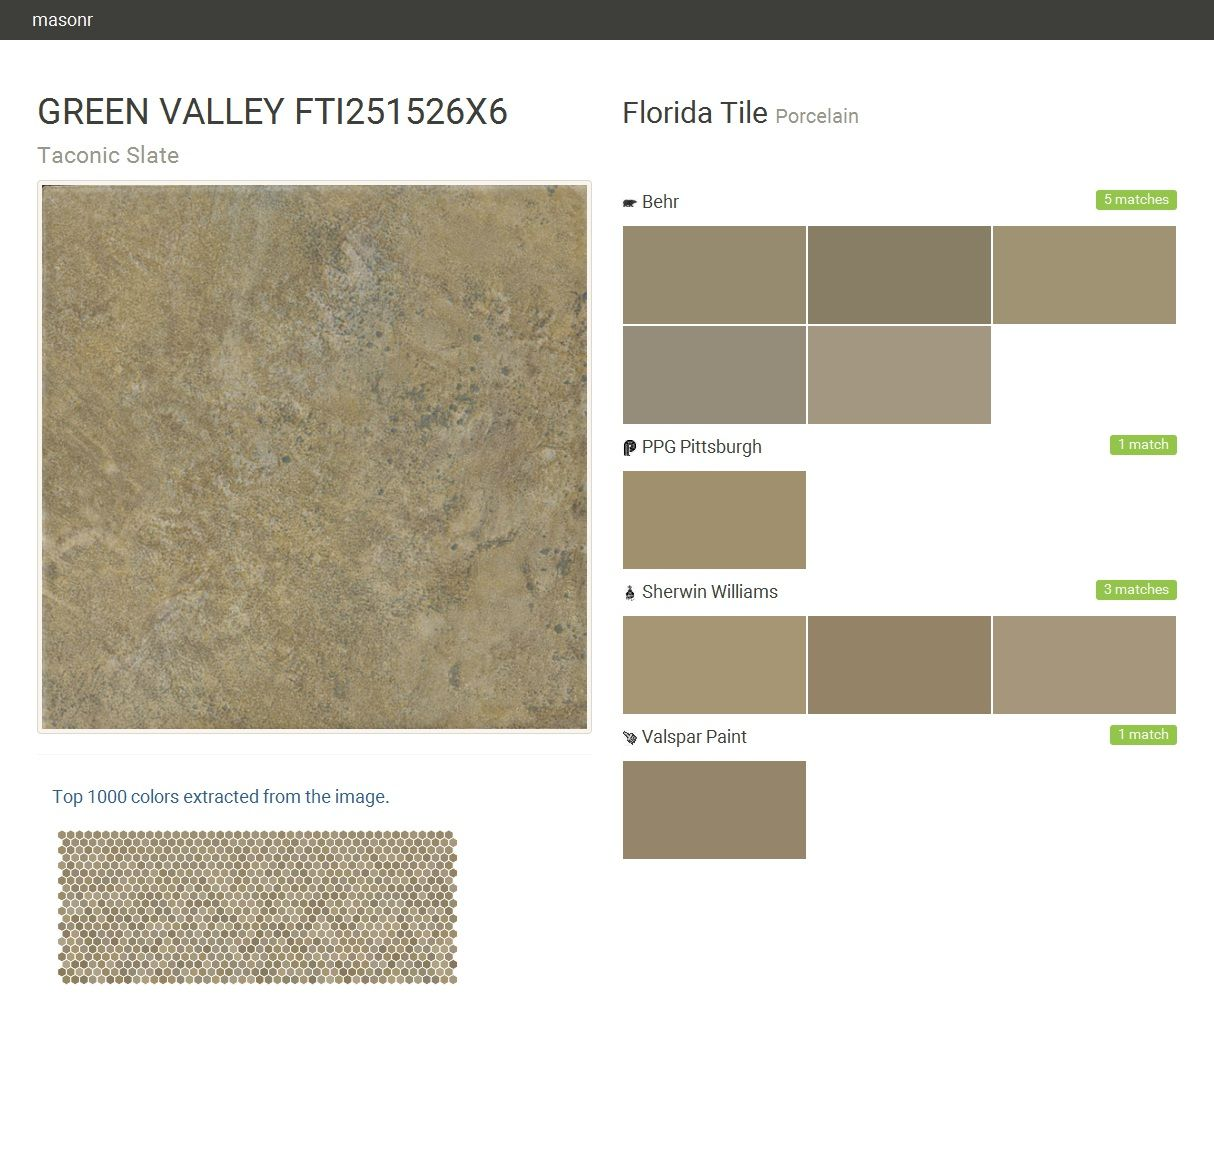 GREEN VALLEY FTI251526X6. Taconic Slate. Porcelain. Florida Tile. Behr. PPG Pittsburgh. Sherwin Williams. Valspar Paint.  Click the gray Visit button to see the matching paint names.